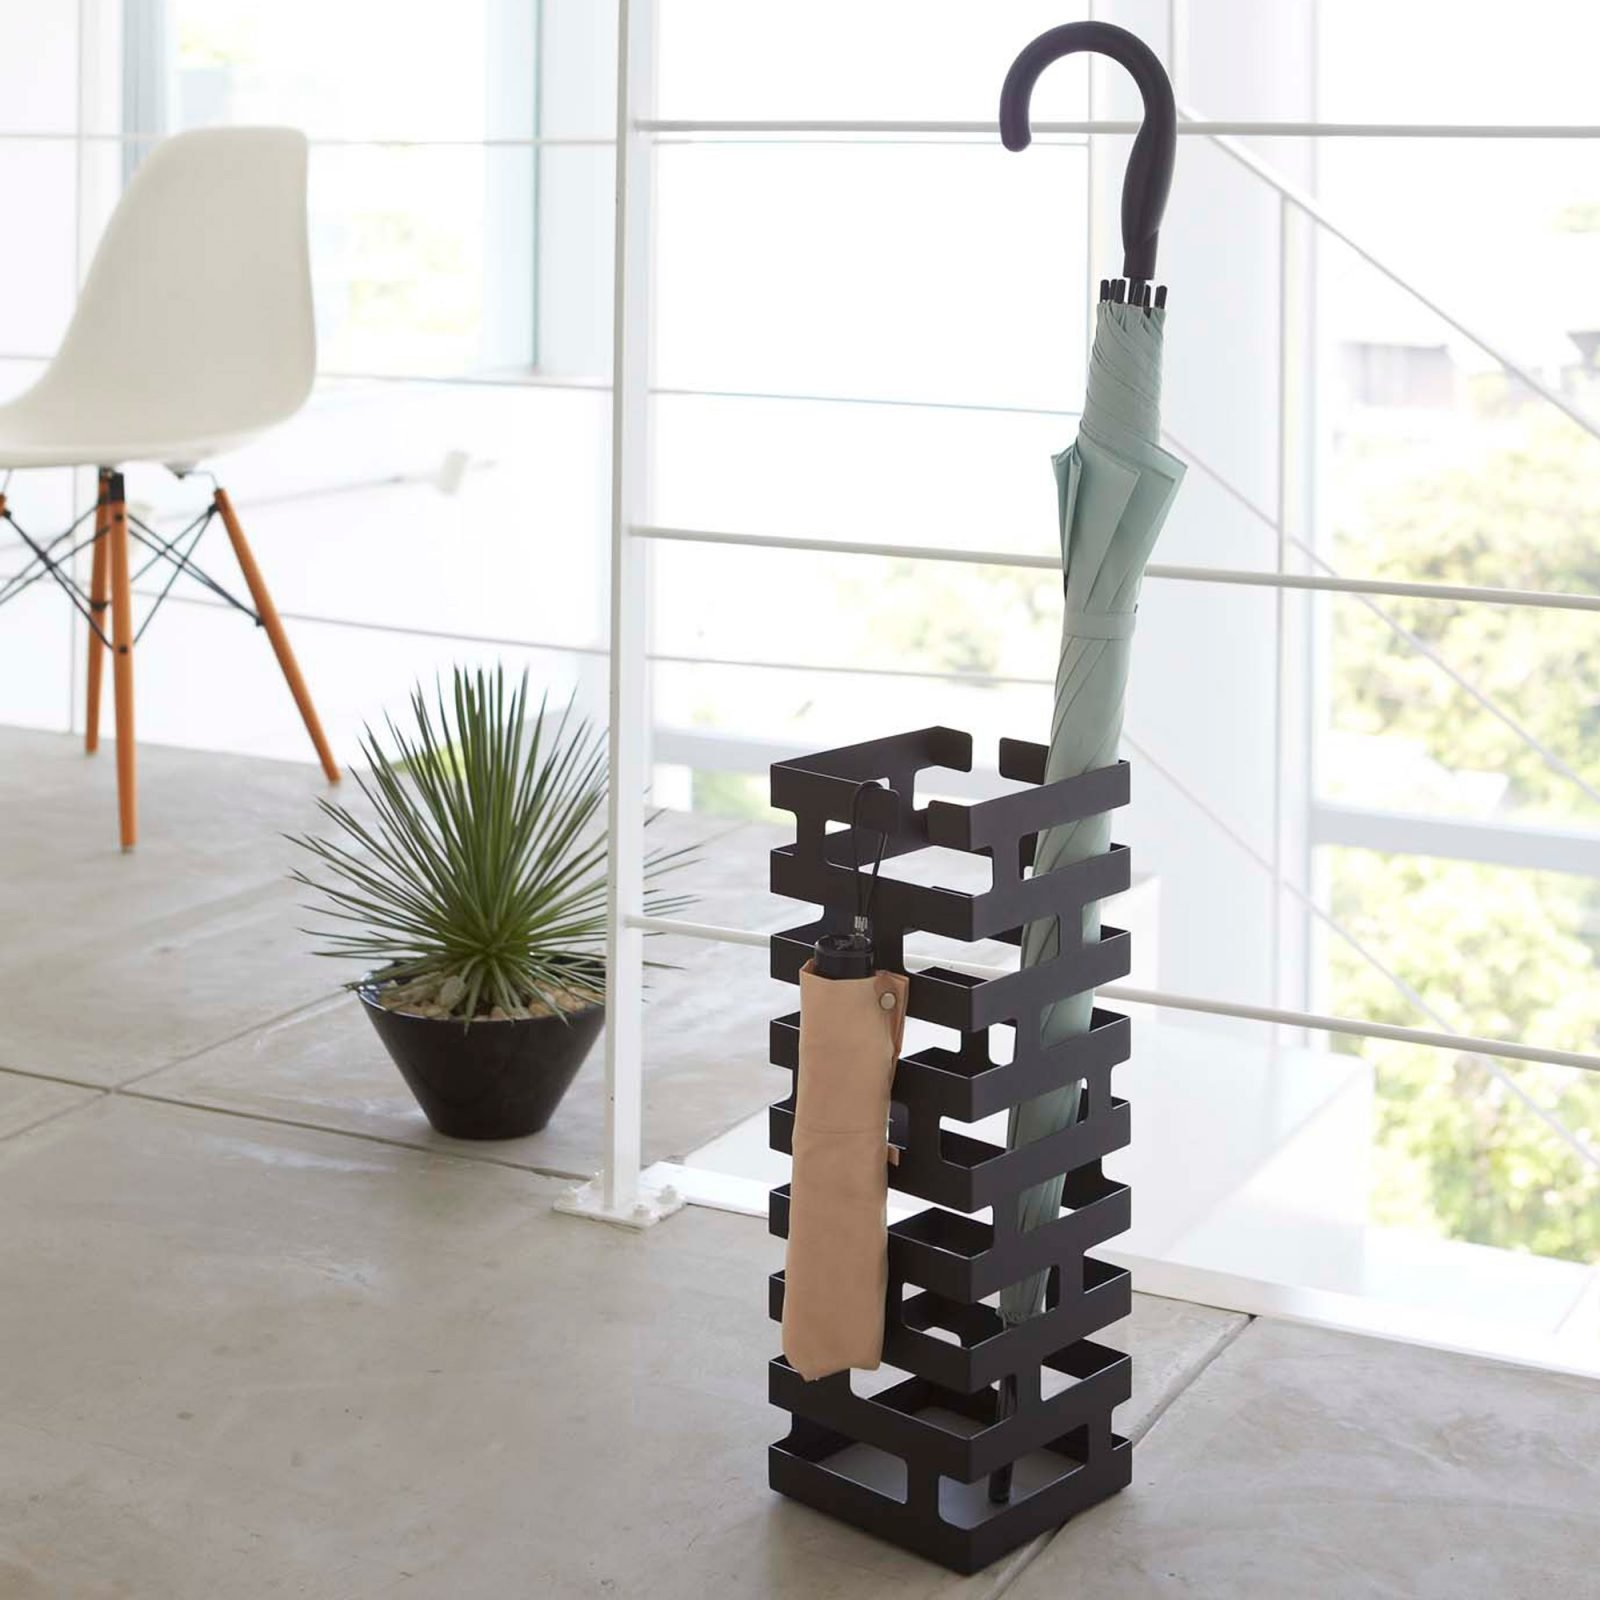 brick-umbrella-stand-black-3